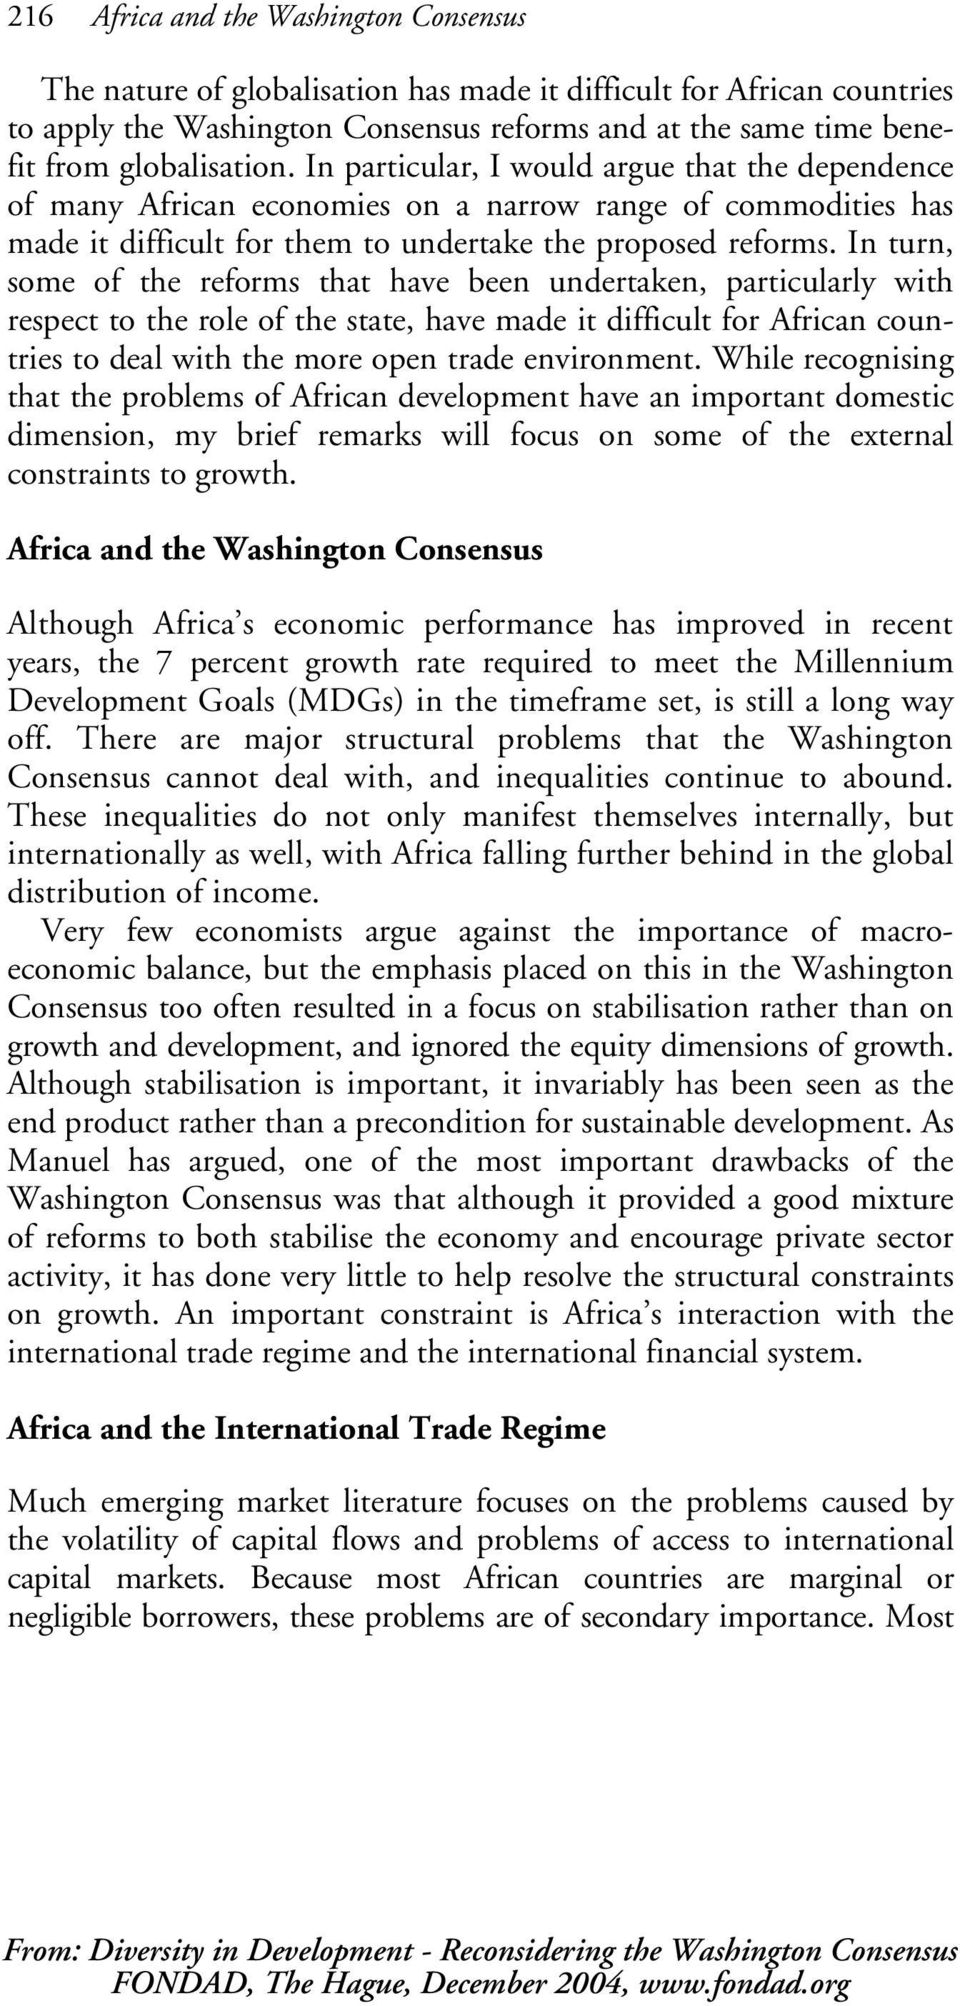 In turn, some of the reforms that have been undertaken, particularly with respect to the role of the state, have made it difficult for African countries to deal with the more open trade environment.